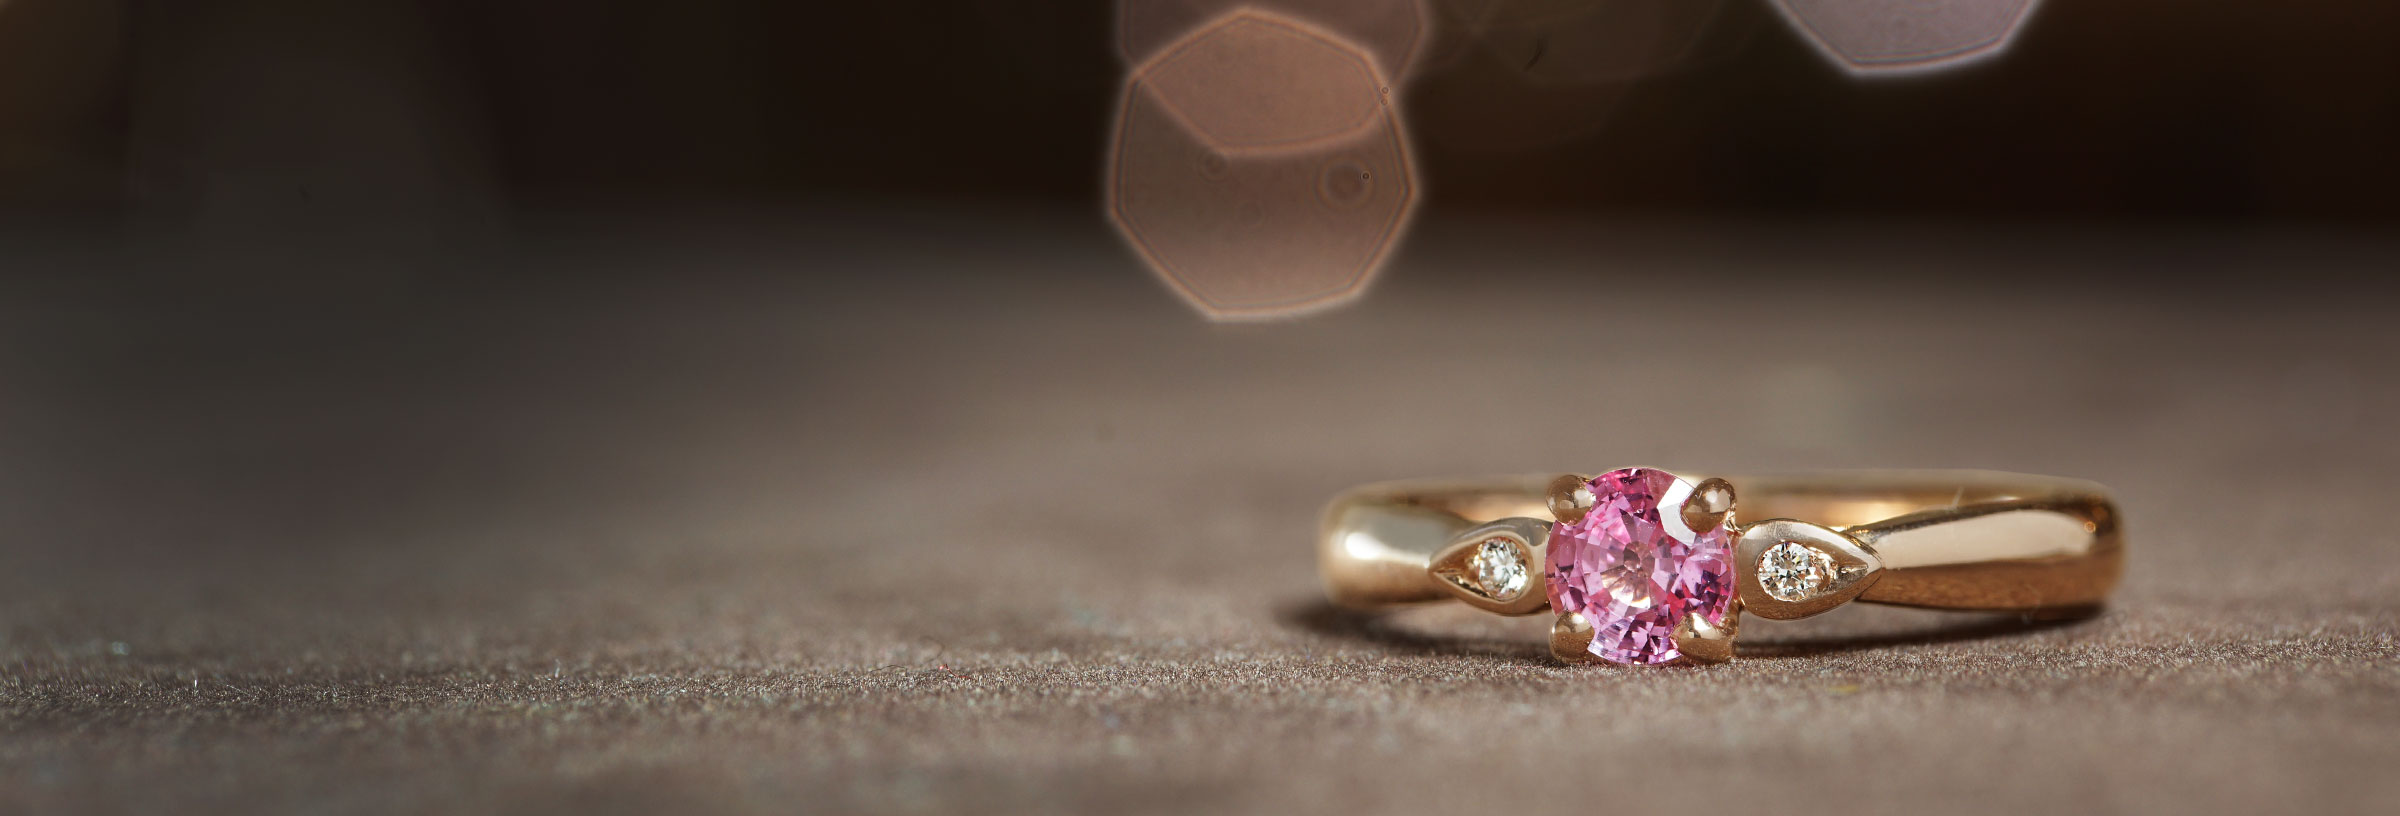 Fairtrade-9-carat-rose-gold-with-diamonds-and-pink-sapphire